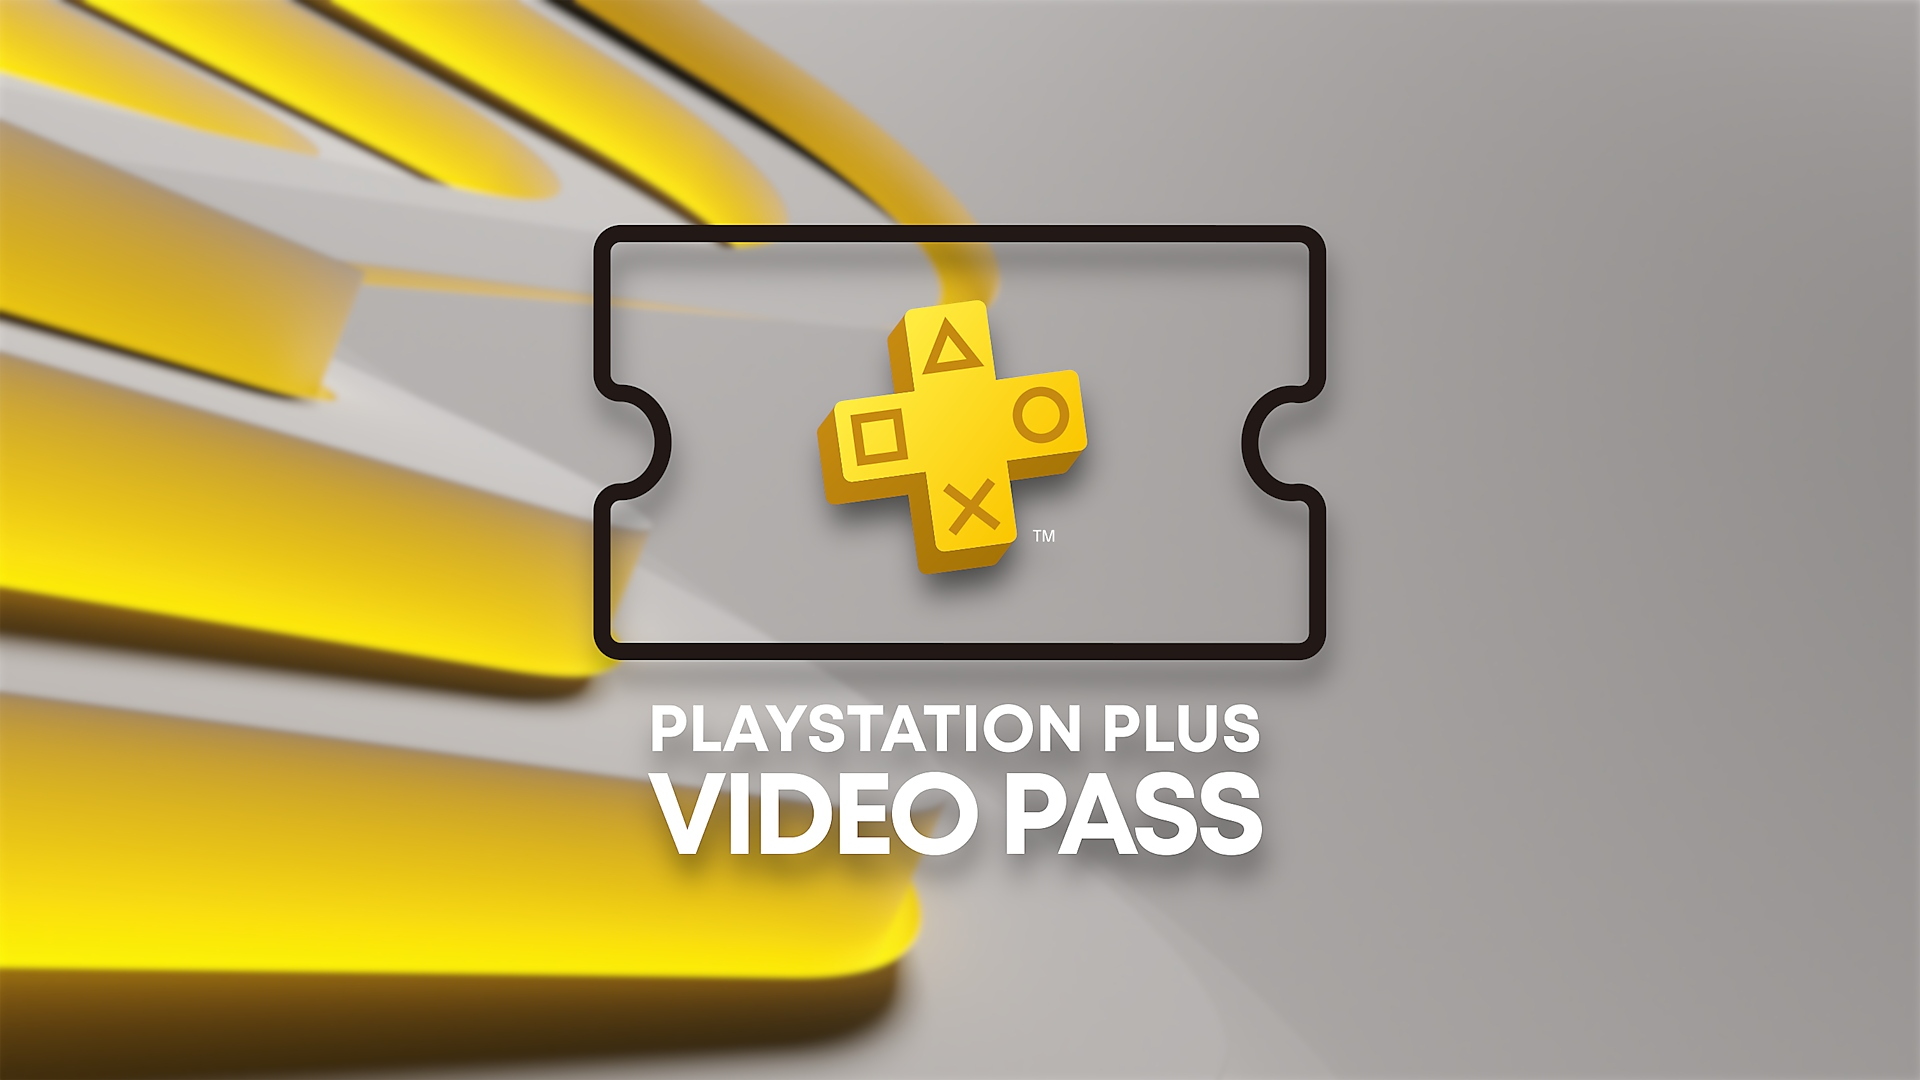 PS Plus Video Pass video 2